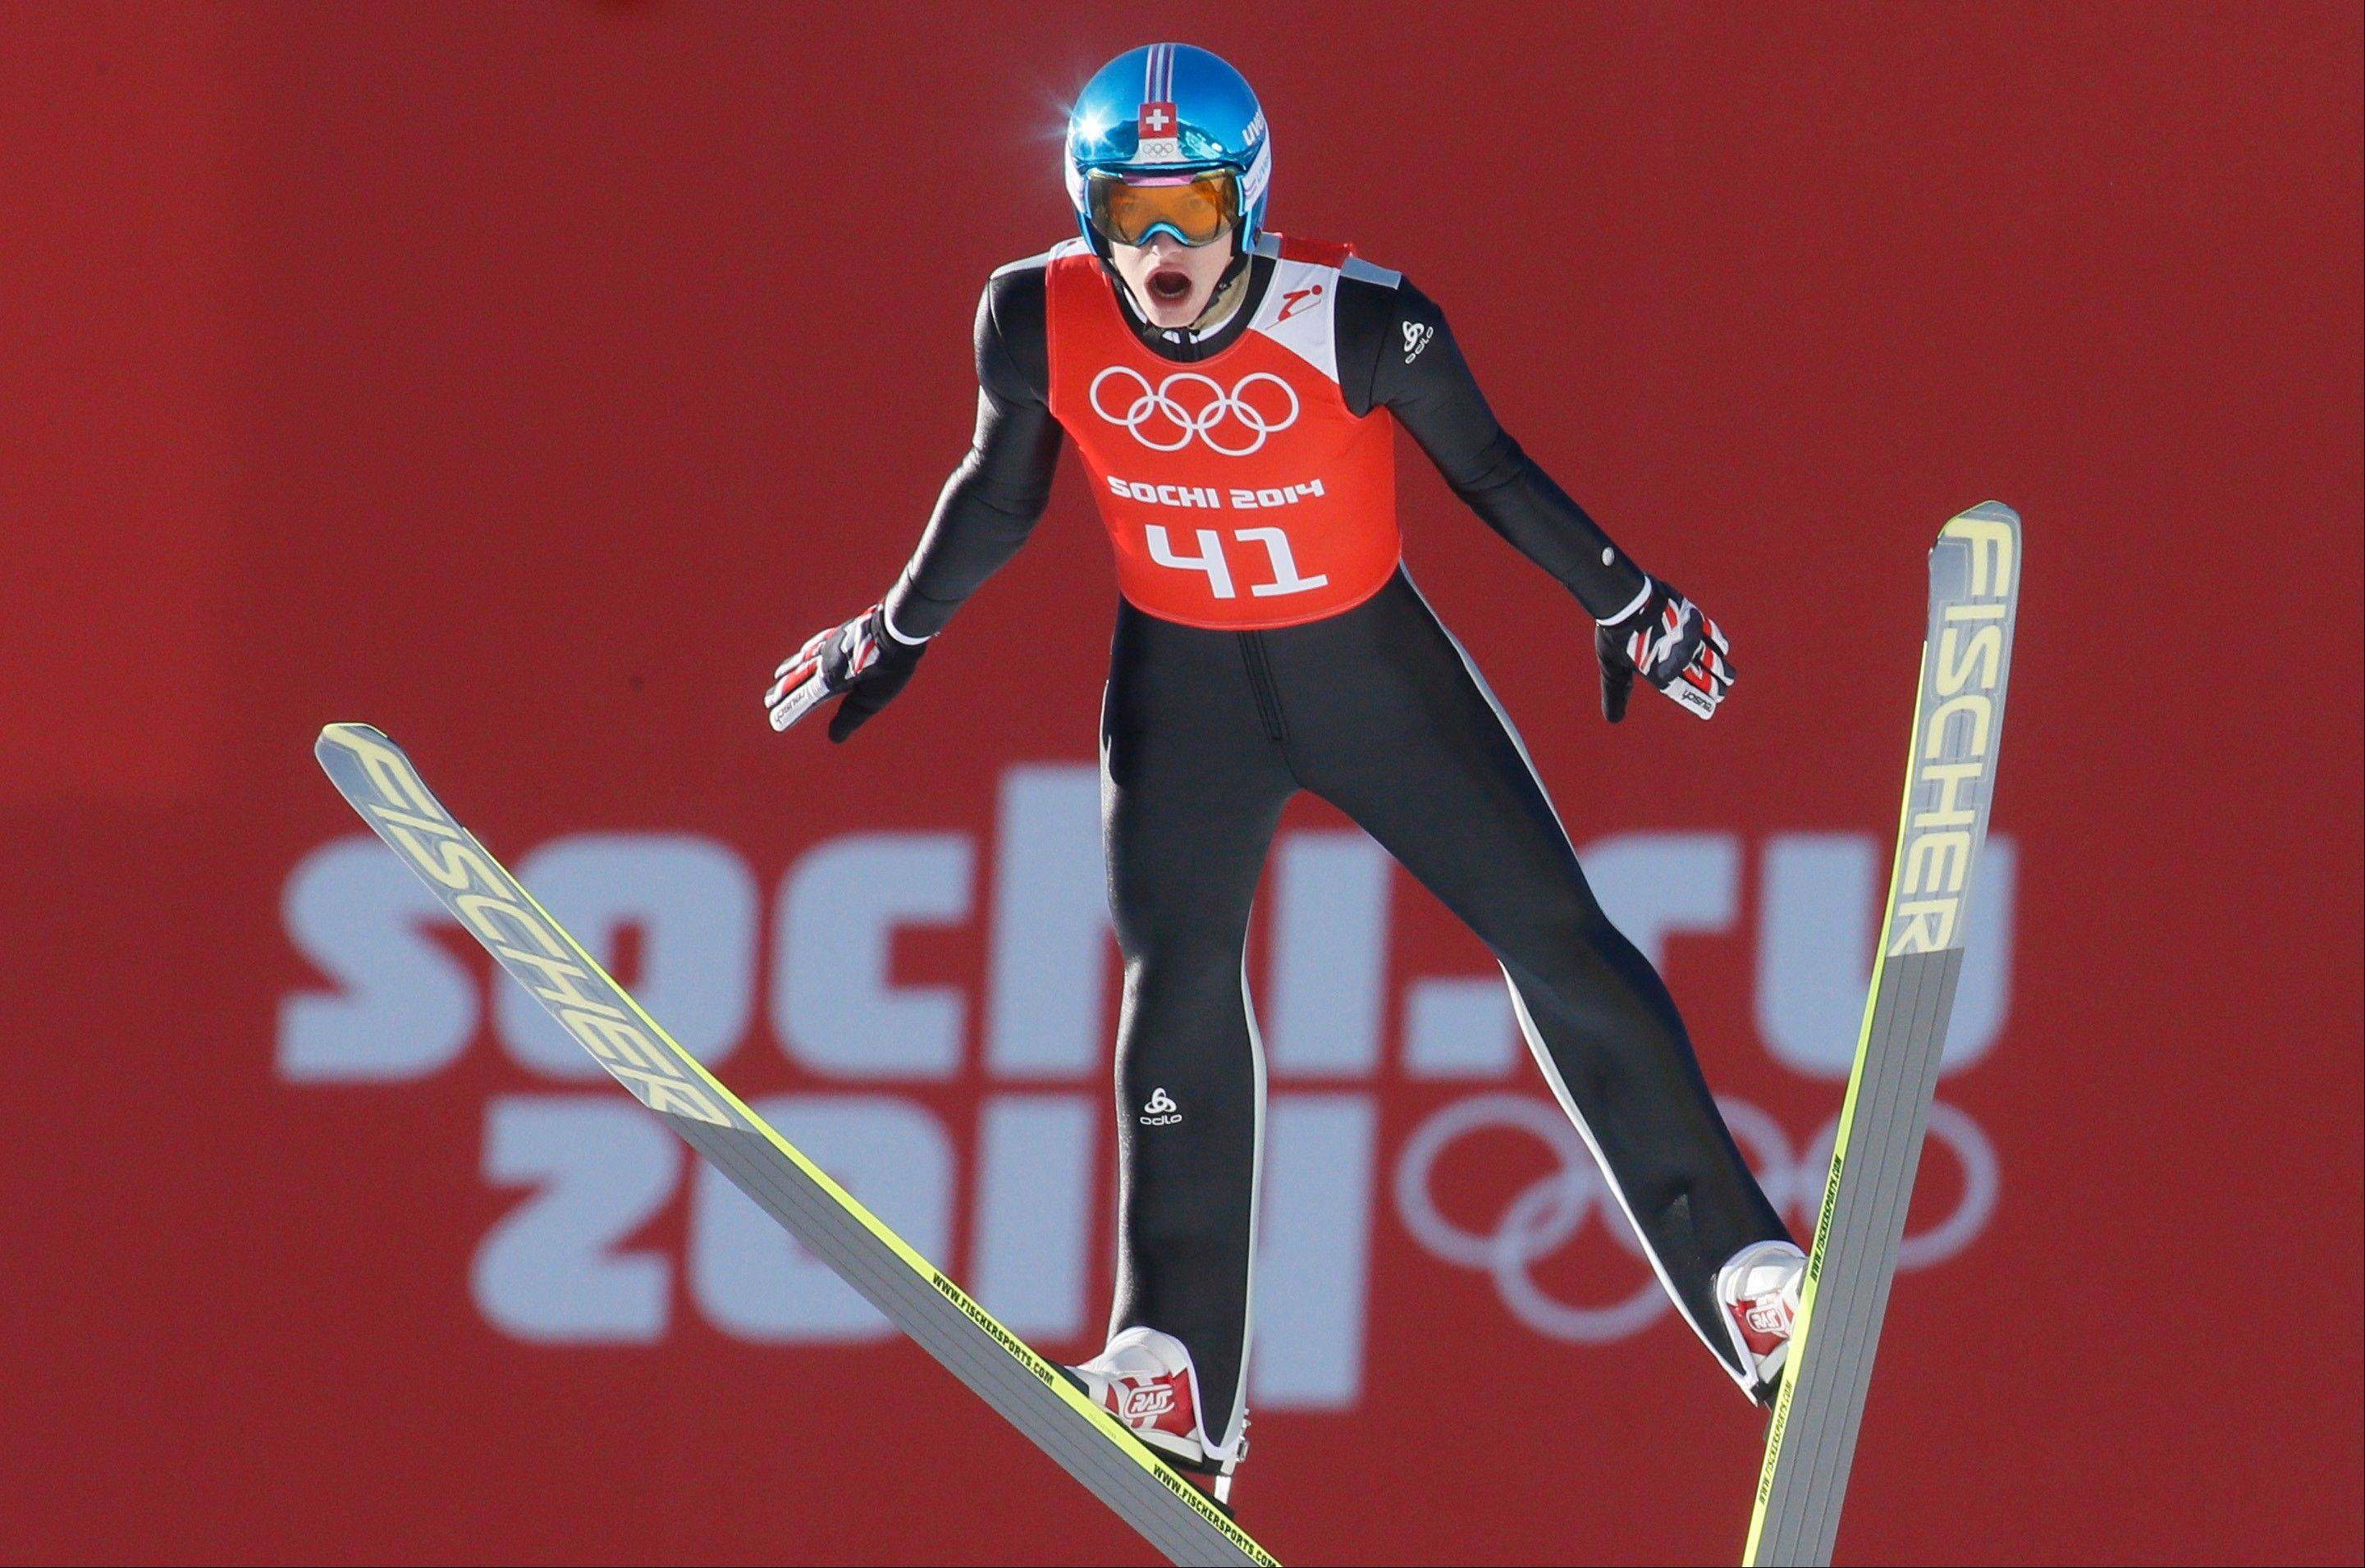 Switzerland�s Gregor Deschwanden makes an attempt Friday during the men�s normal hill ski jumping training at the 2014 Winter Olympics in Krasnaya Polyana, Russia.